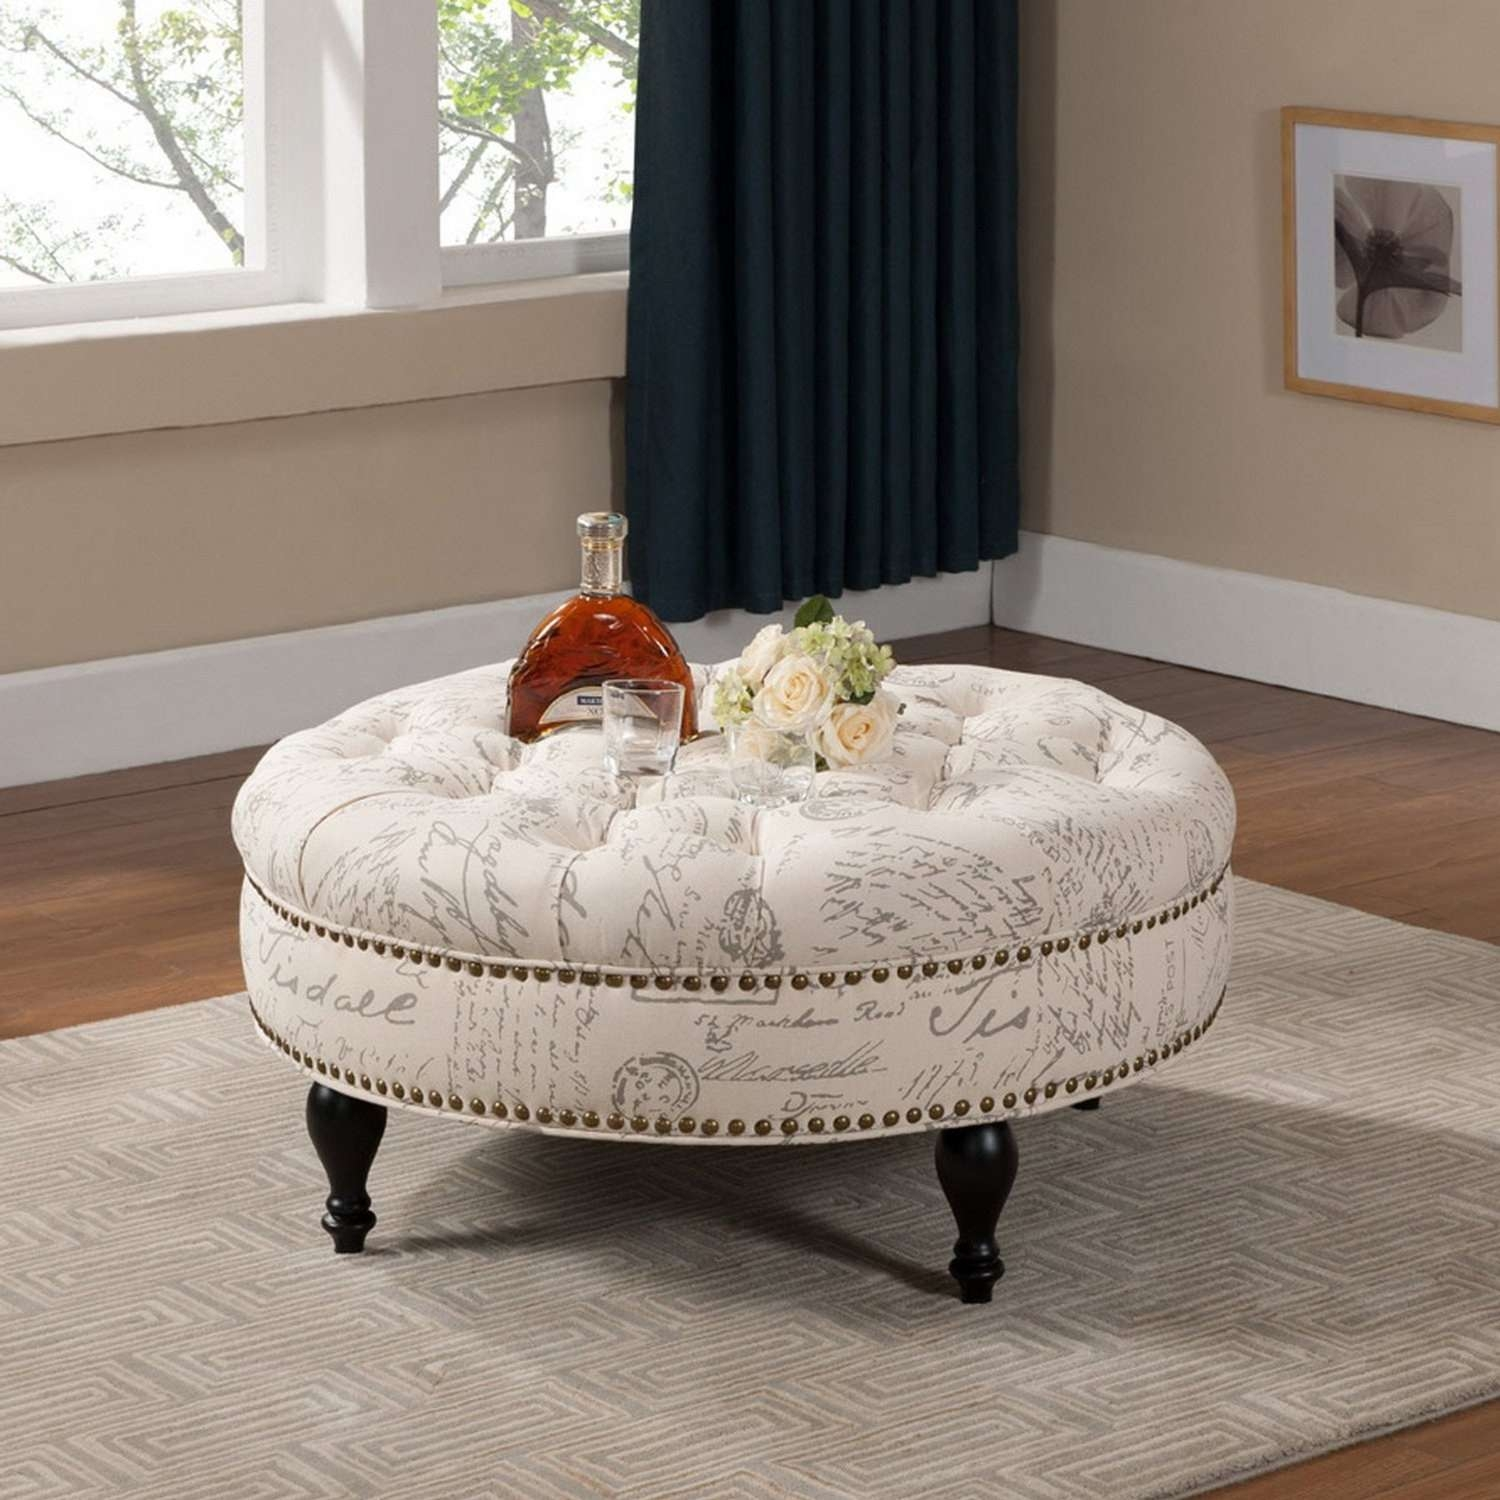 Round Tufted Coffee Table Ottoman Round Tufted Ottoman Coffee Pertaining To 2018 Round Upholstered Coffee Tables (View 10 of 20)